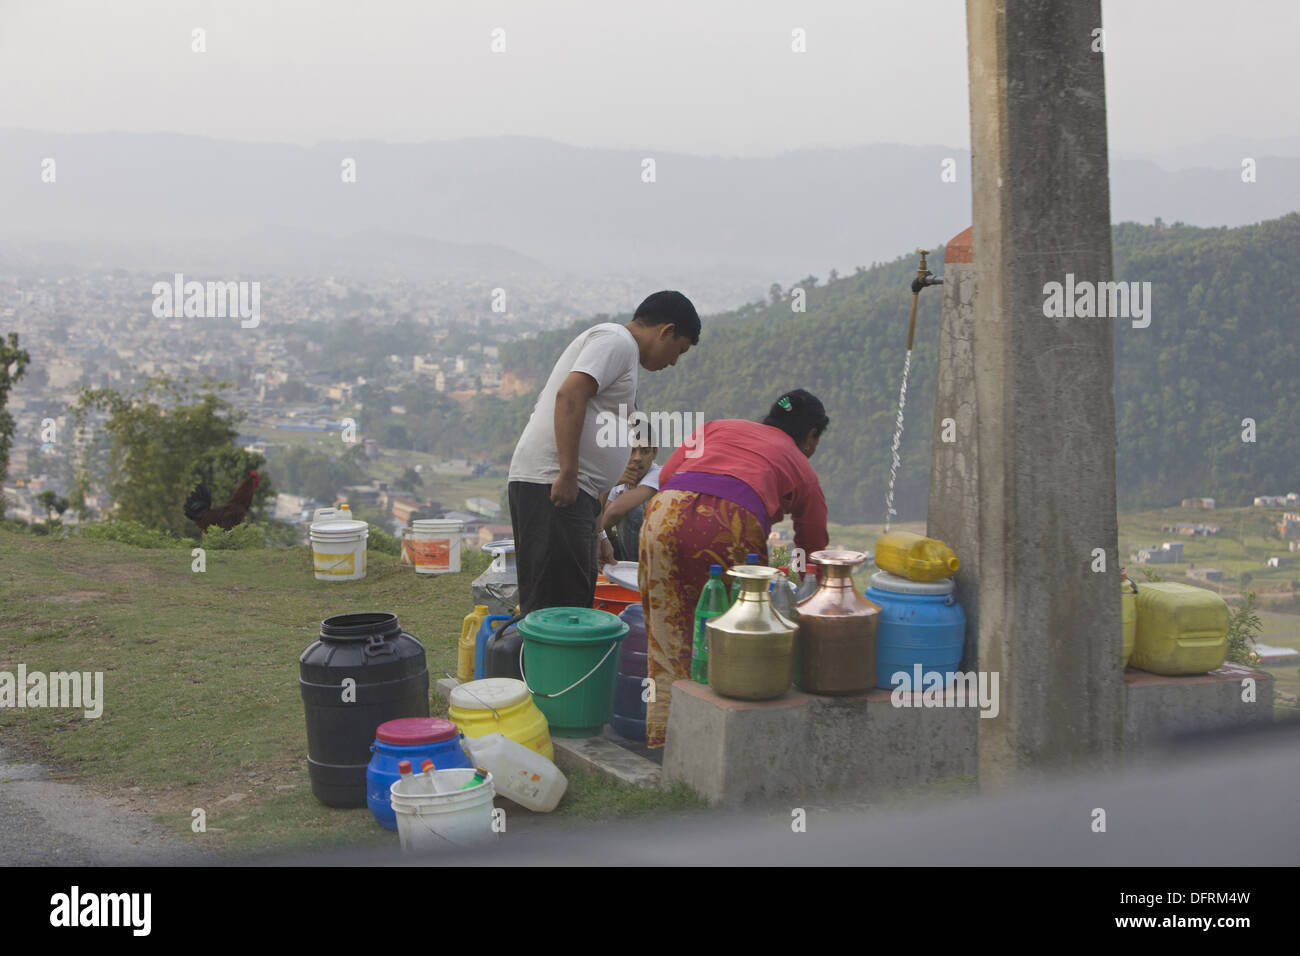 People filling and storing tap water. - Stock Image